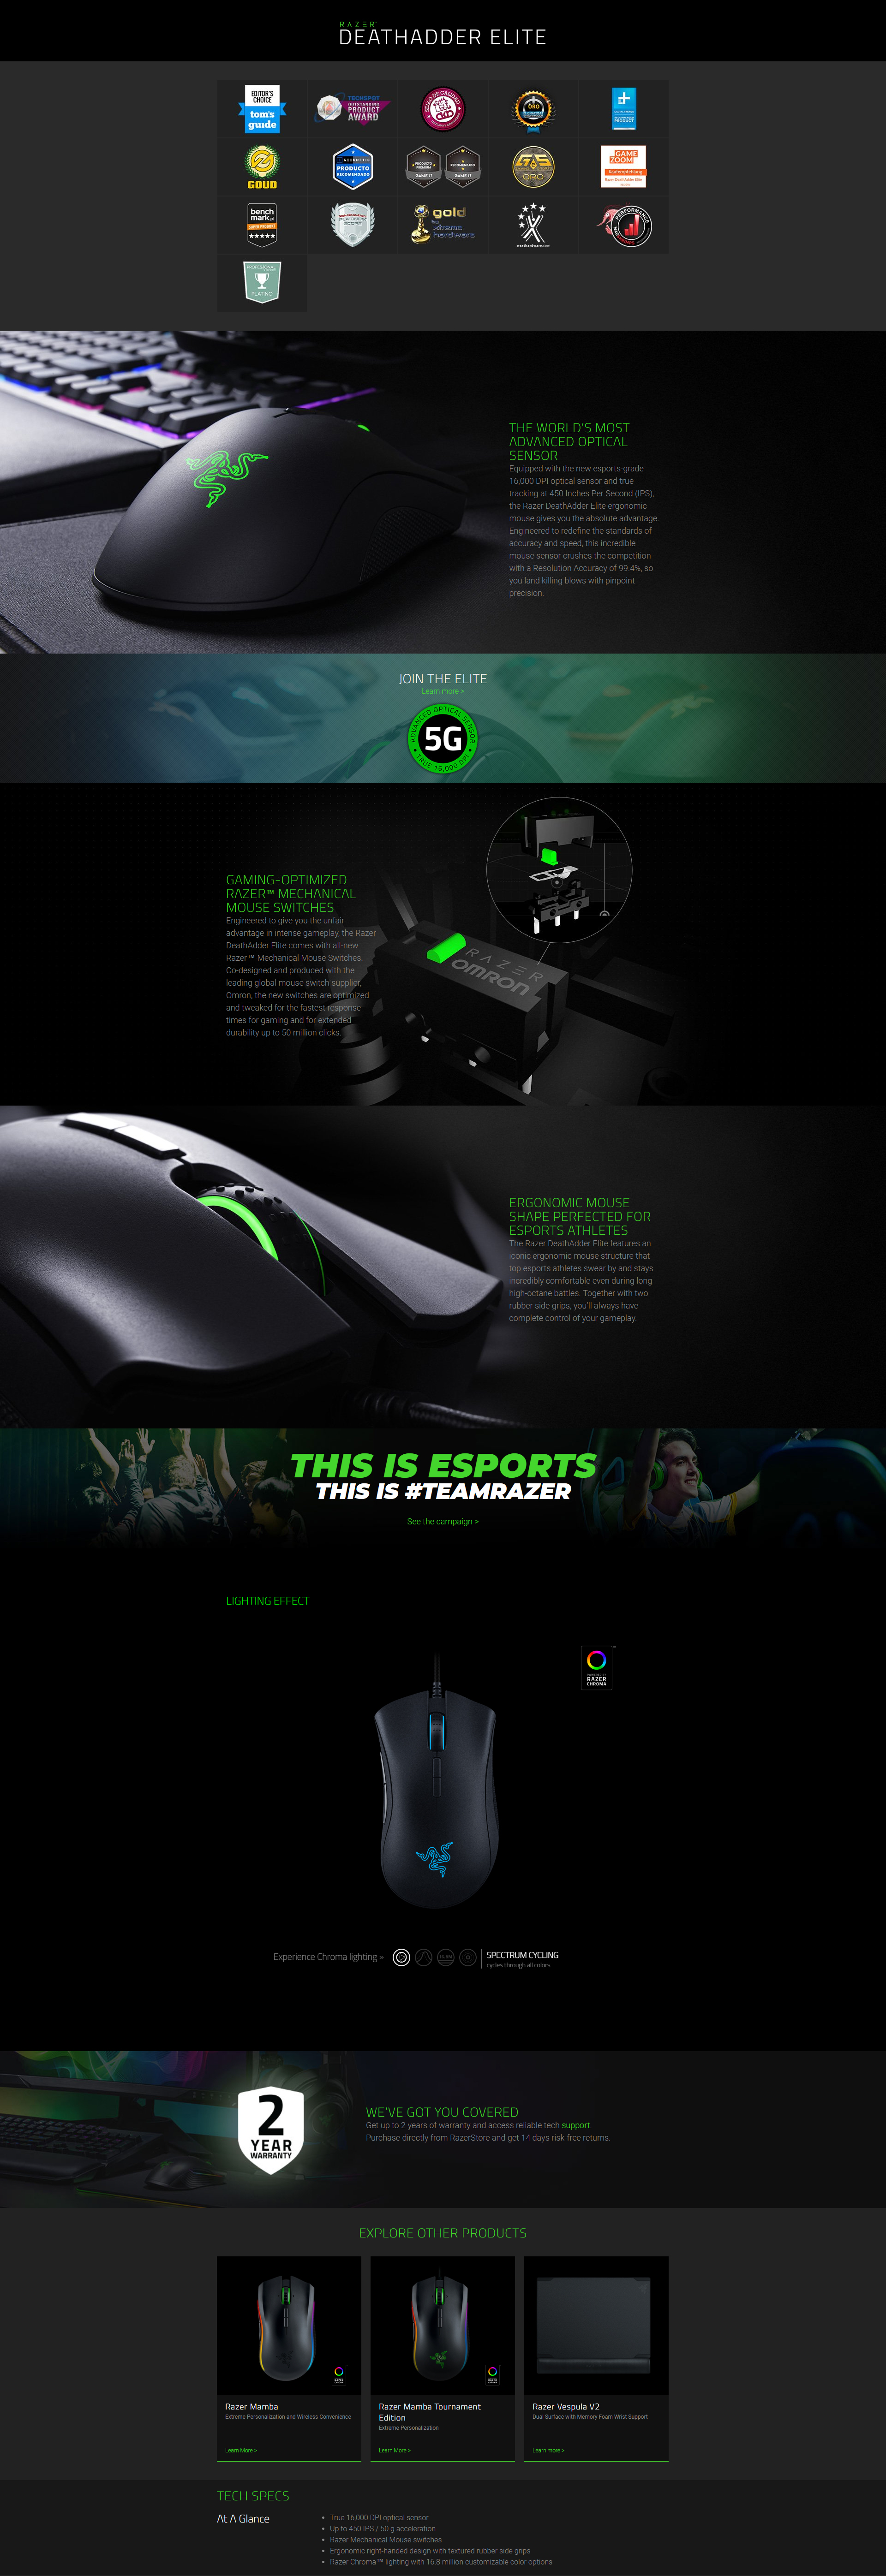 A large marketing image providing additional information about the product Razer DeathAdder Elite Chroma RGB Optical Gaming Mouse - Additional alt info not provided